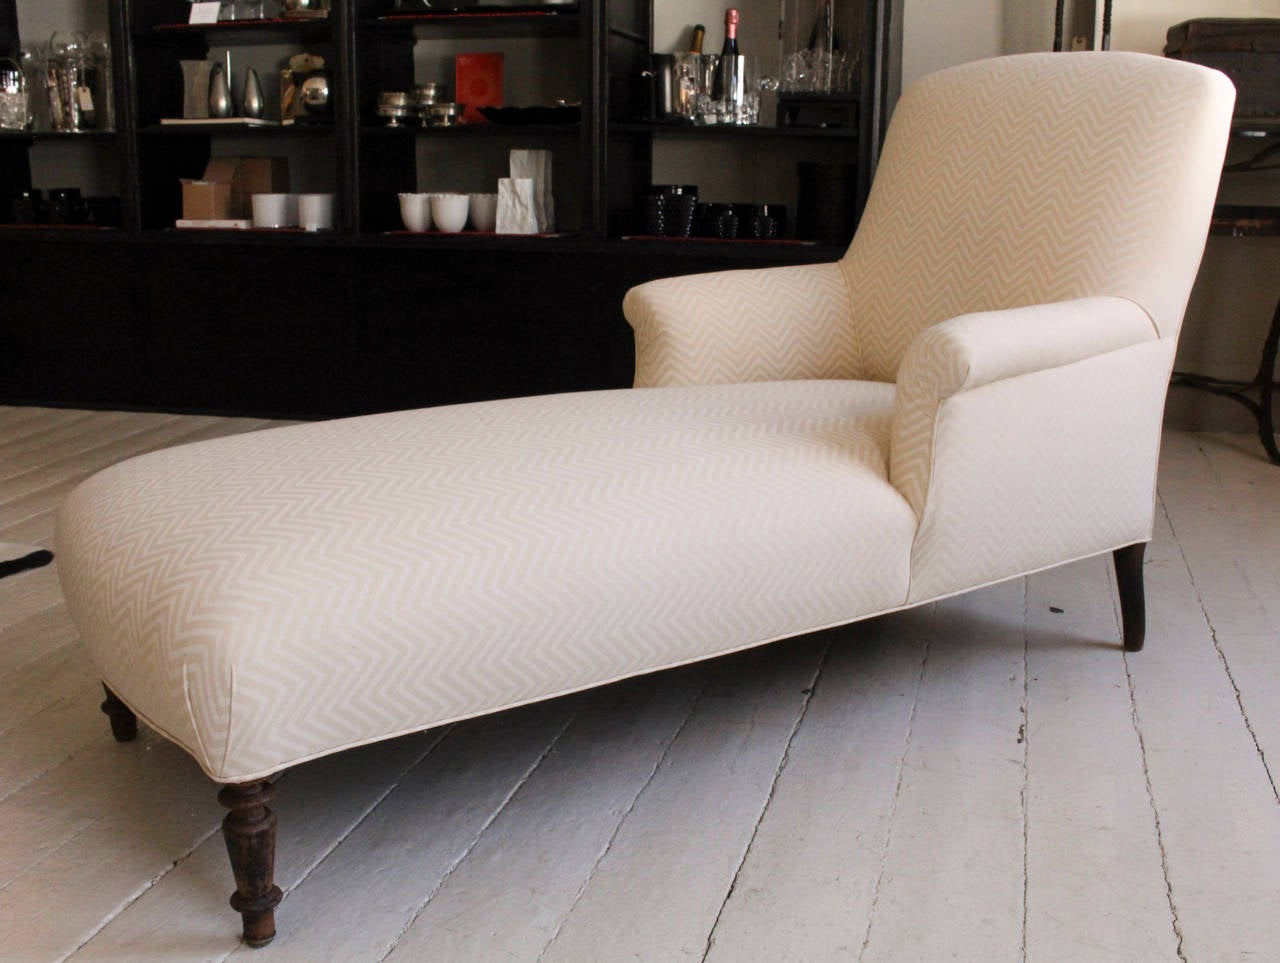 Napoleon iii chaise longue at 1stdibs for 1 zitsbank met chaise longue